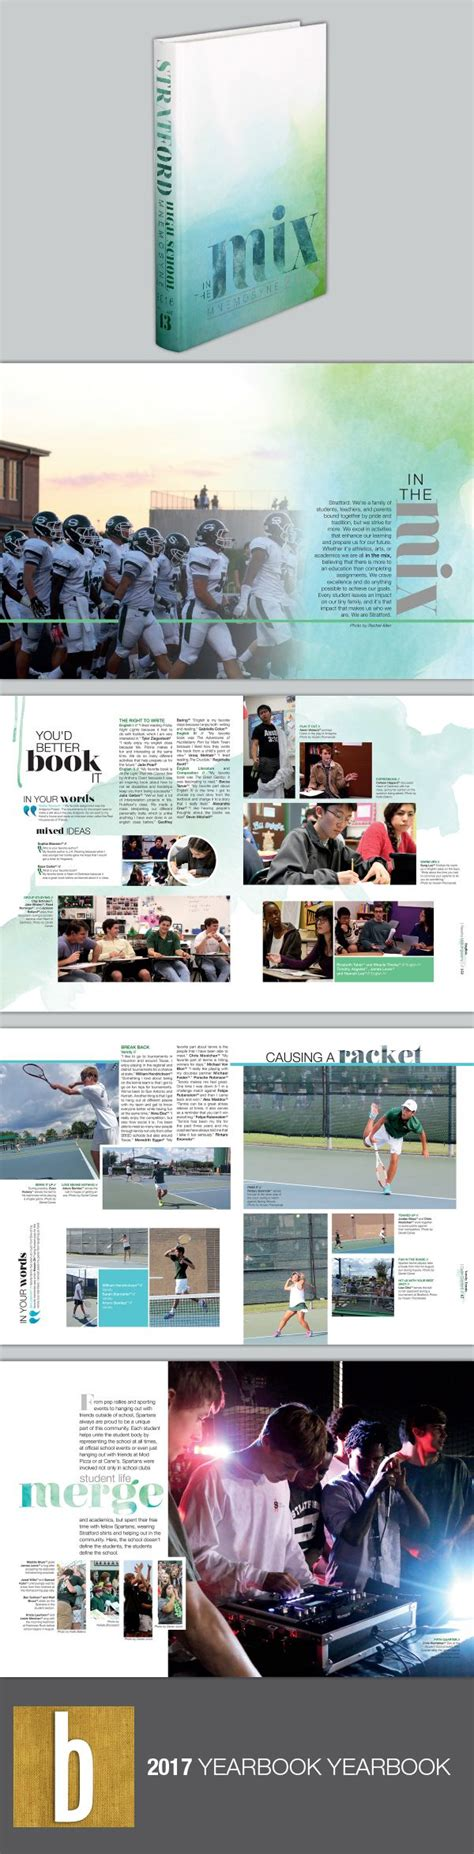 yearbook layout rules best 25 yearbook theme ideas on pinterest yearbook